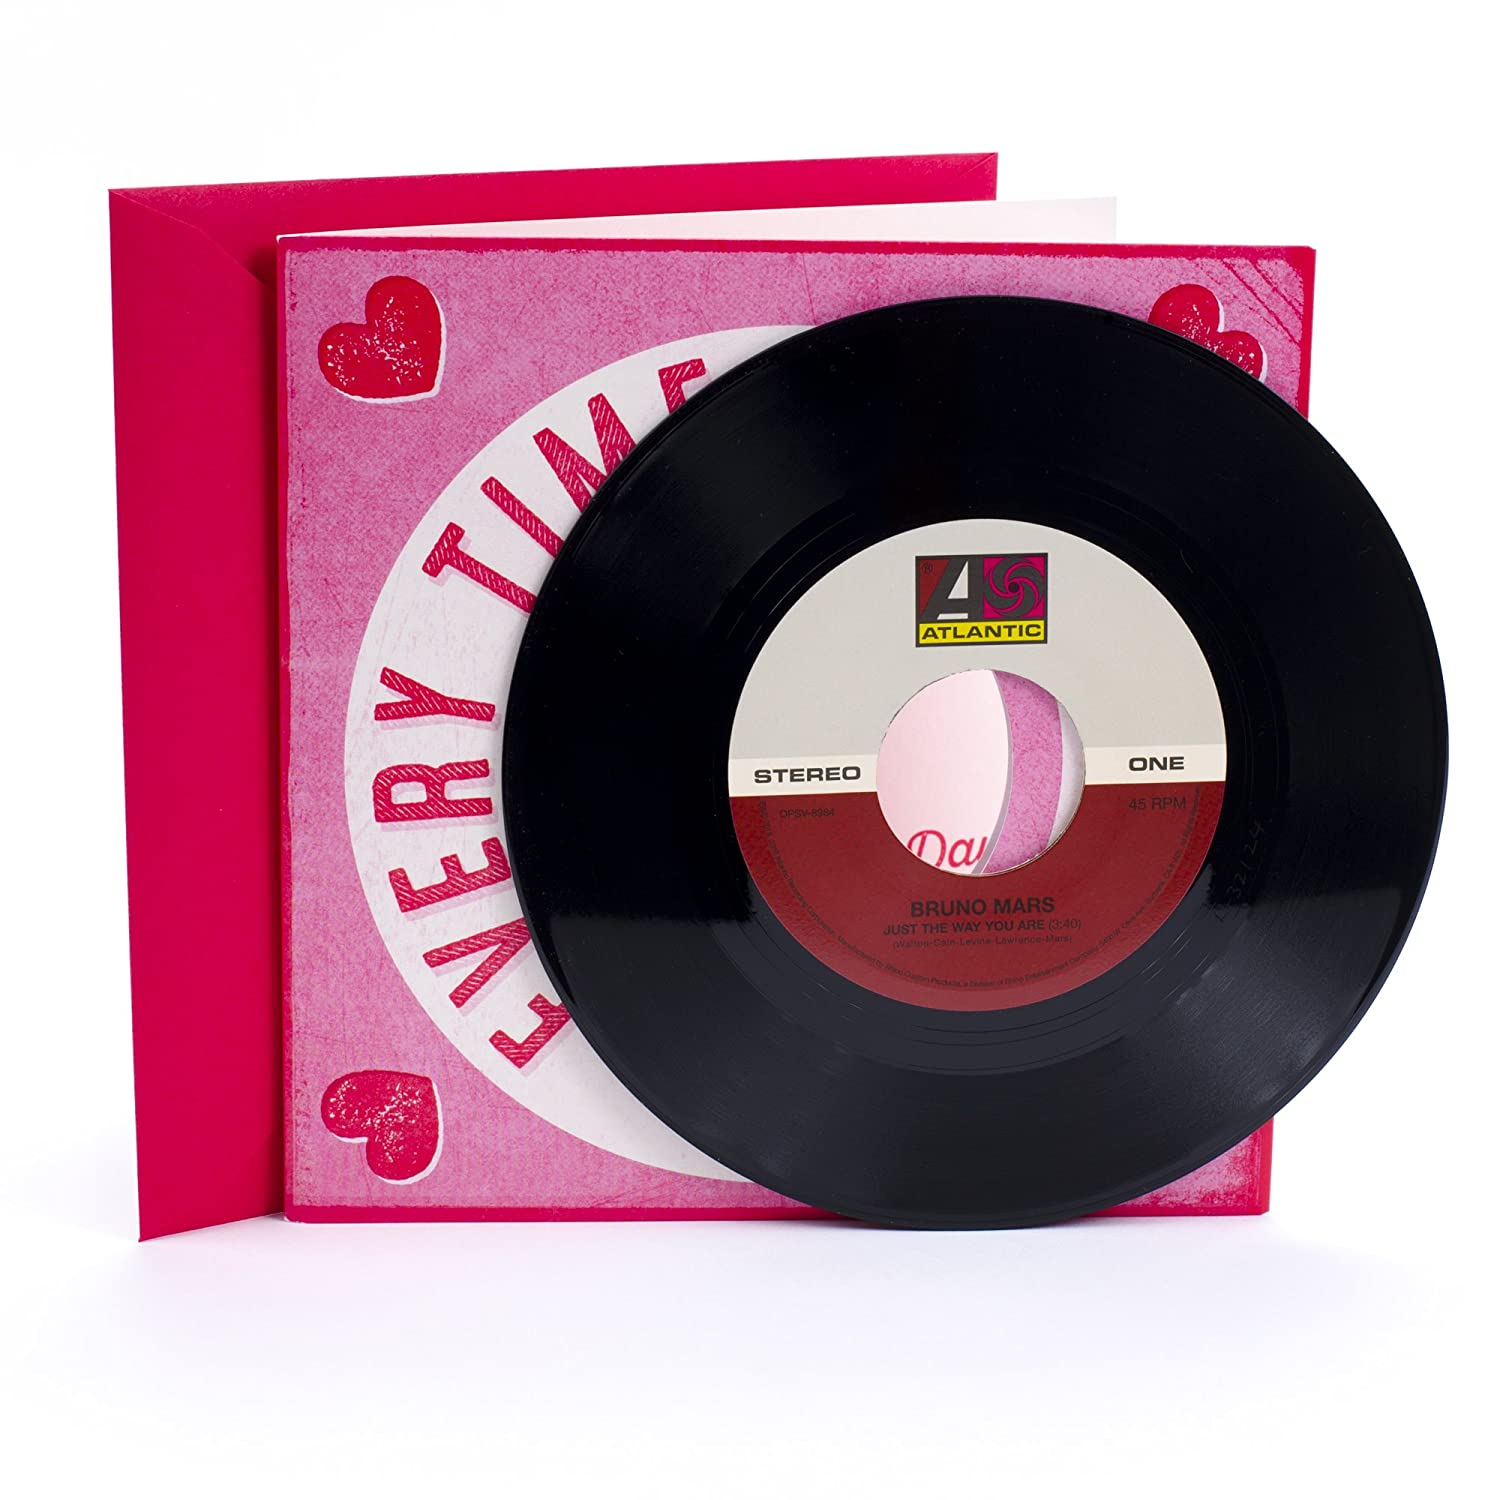 Amazon hallmark valentines day card with vinyl record real amazon hallmark valentines day card with vinyl record real bruno mars 45 record and 2 songs office products m4hsunfo